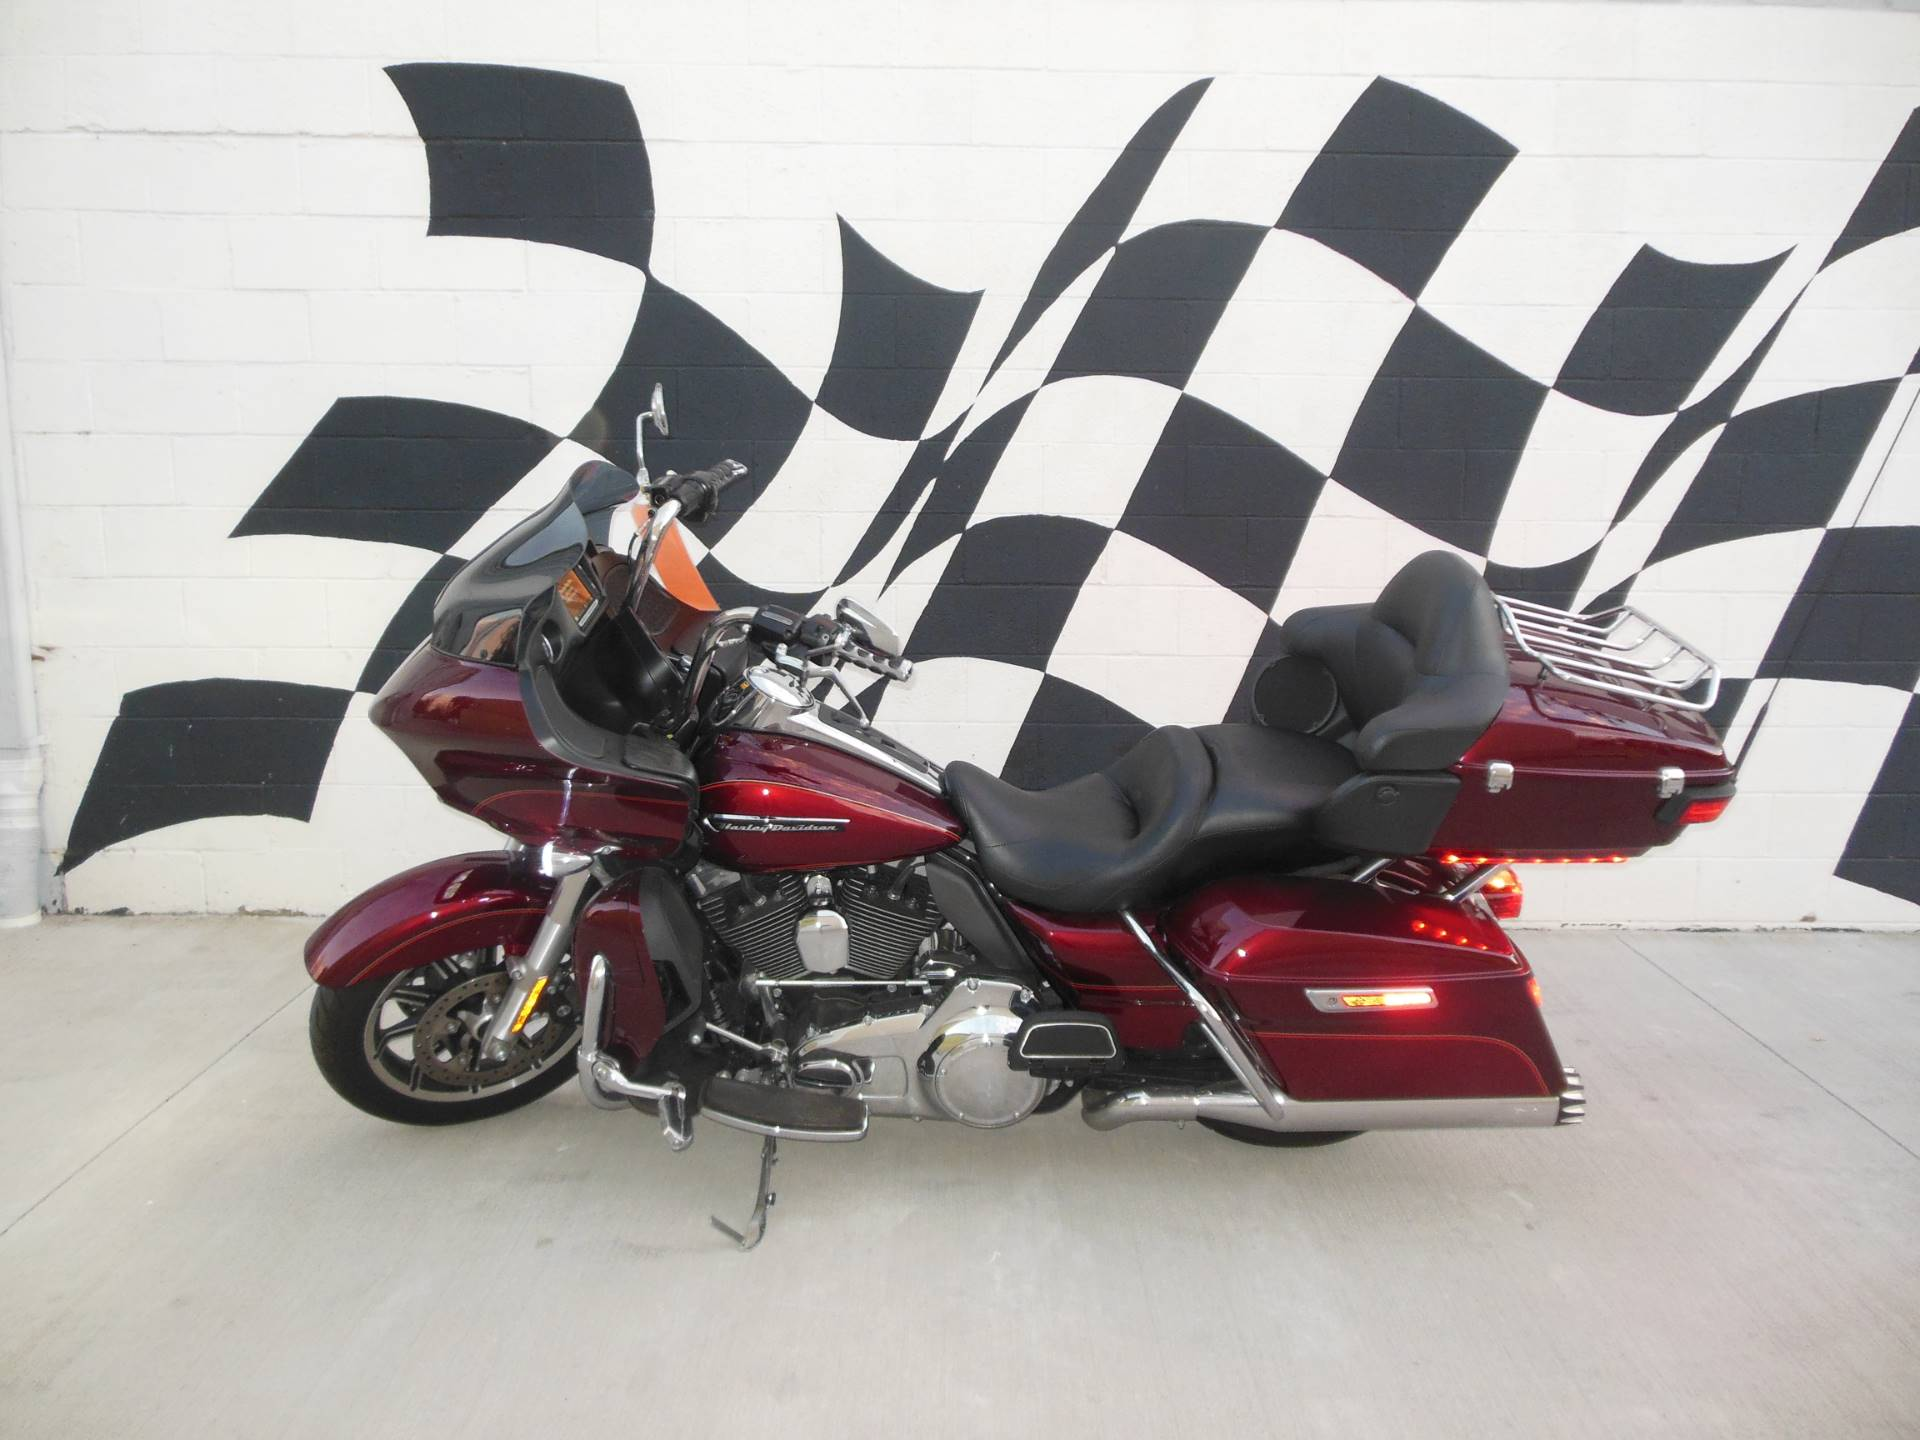 2016 Harley-Davidson Road Glide Ultra for sale 20898